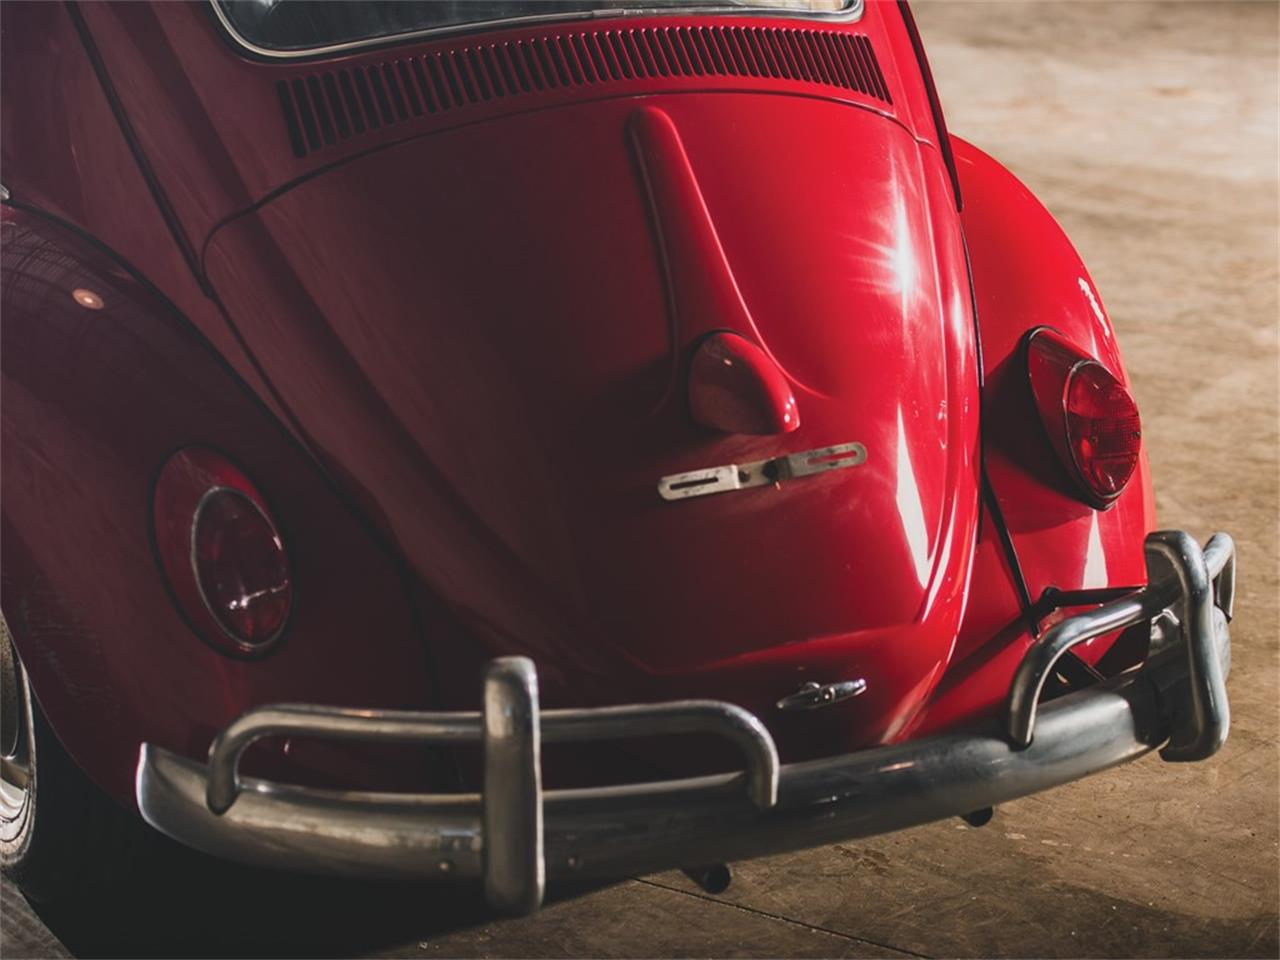 Large Picture of Classic '62 Volkswagen Beetle Deluxe 'Sunroof' Sedan Auction Vehicle Offered by RM Sotheby's - PMN5